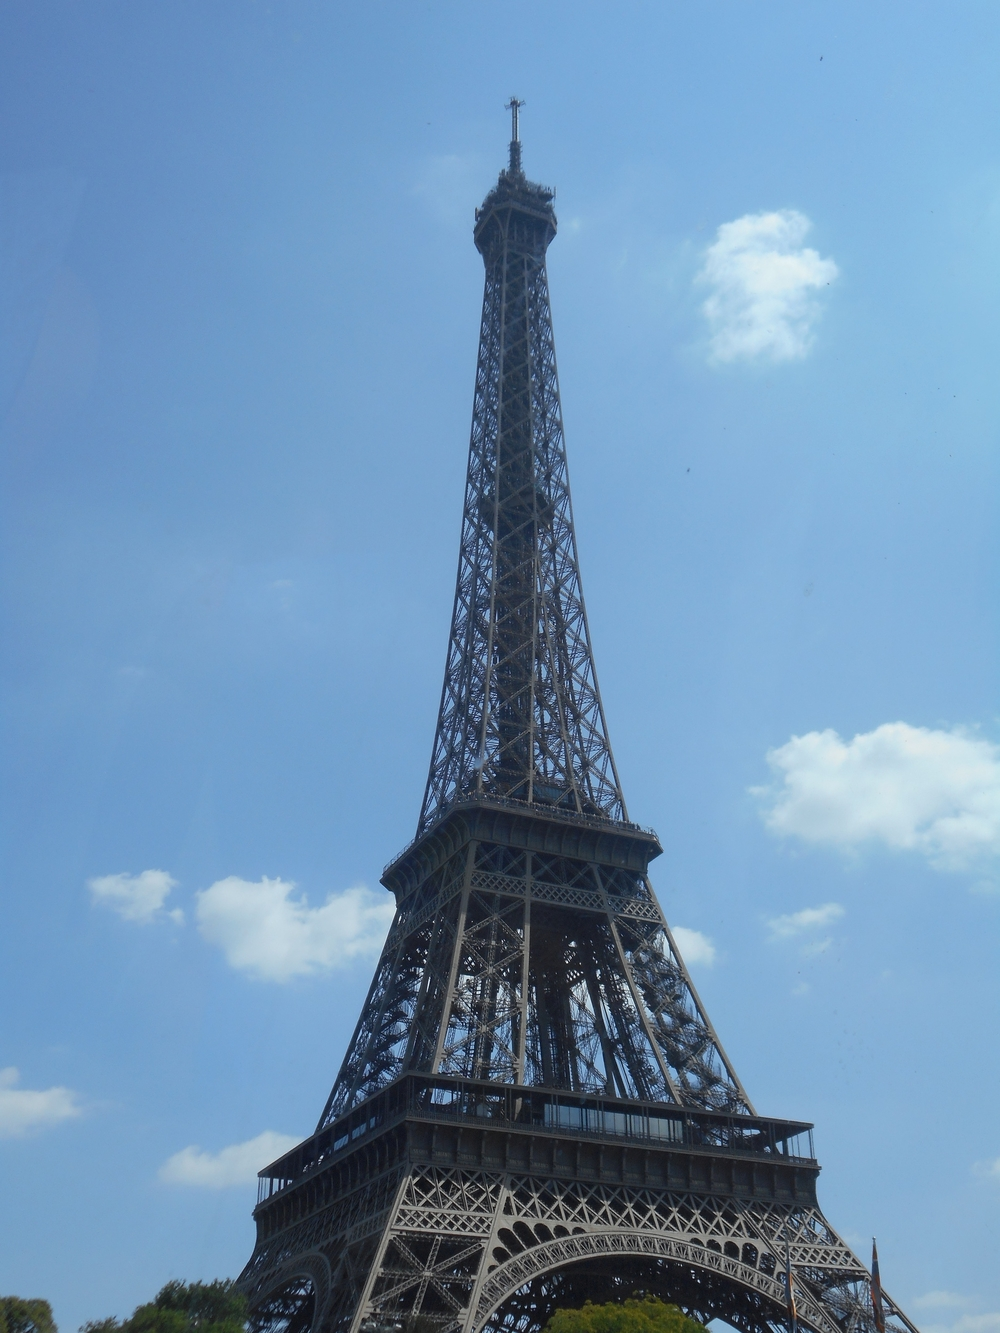 The Eiffel Tower was totally amazing and beautiful; I loved it!